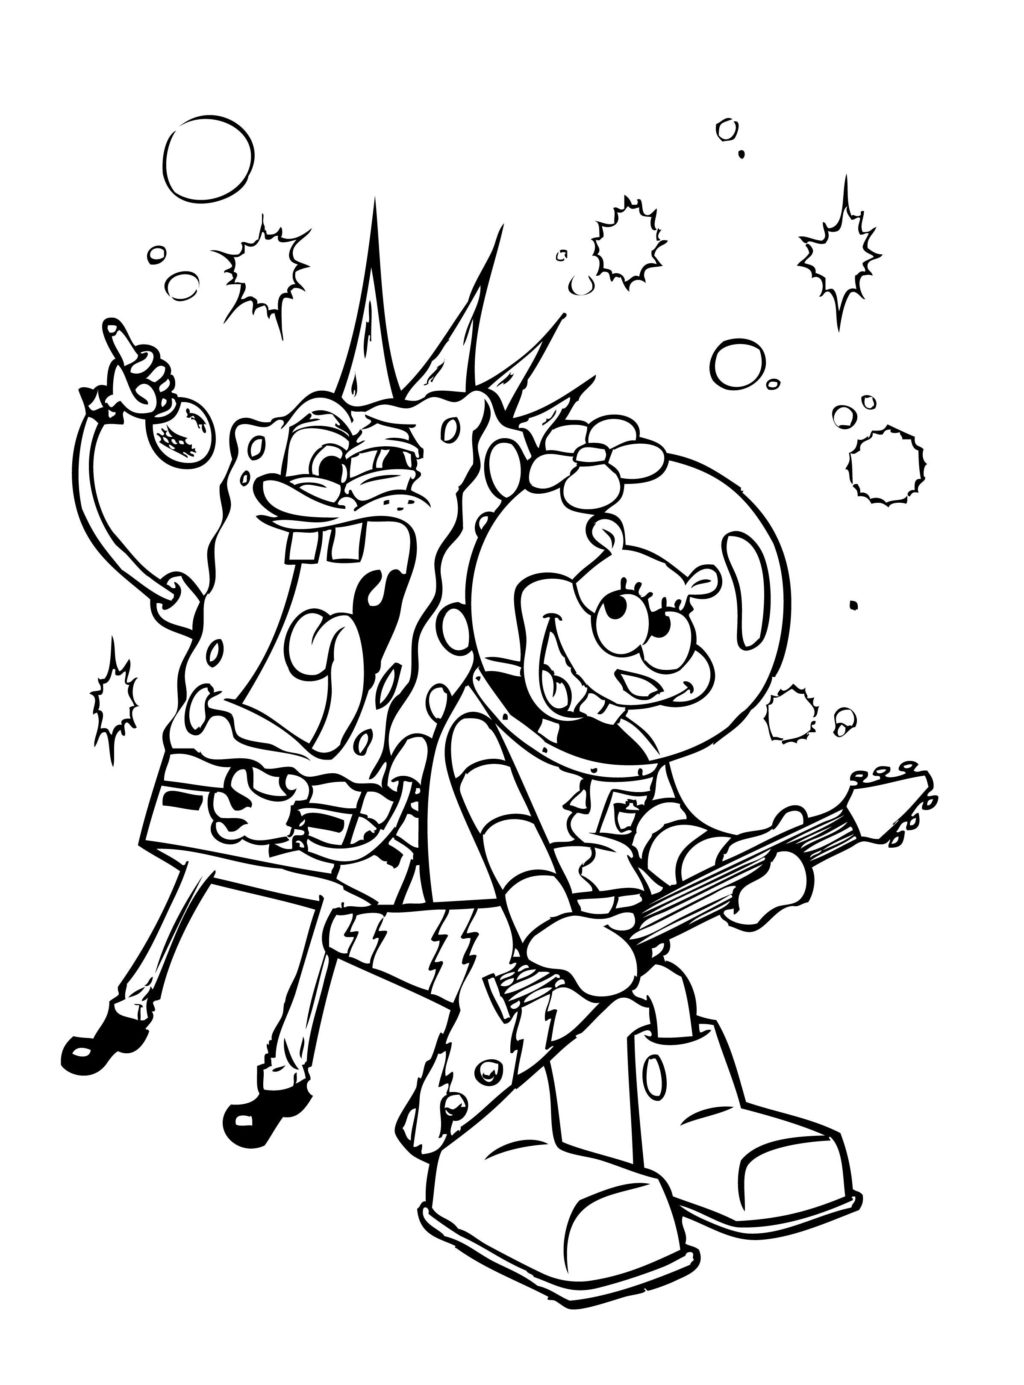 Word Search Coloring Pages Coloring Book World Phenomenal Spongebob Coloring Book Pages